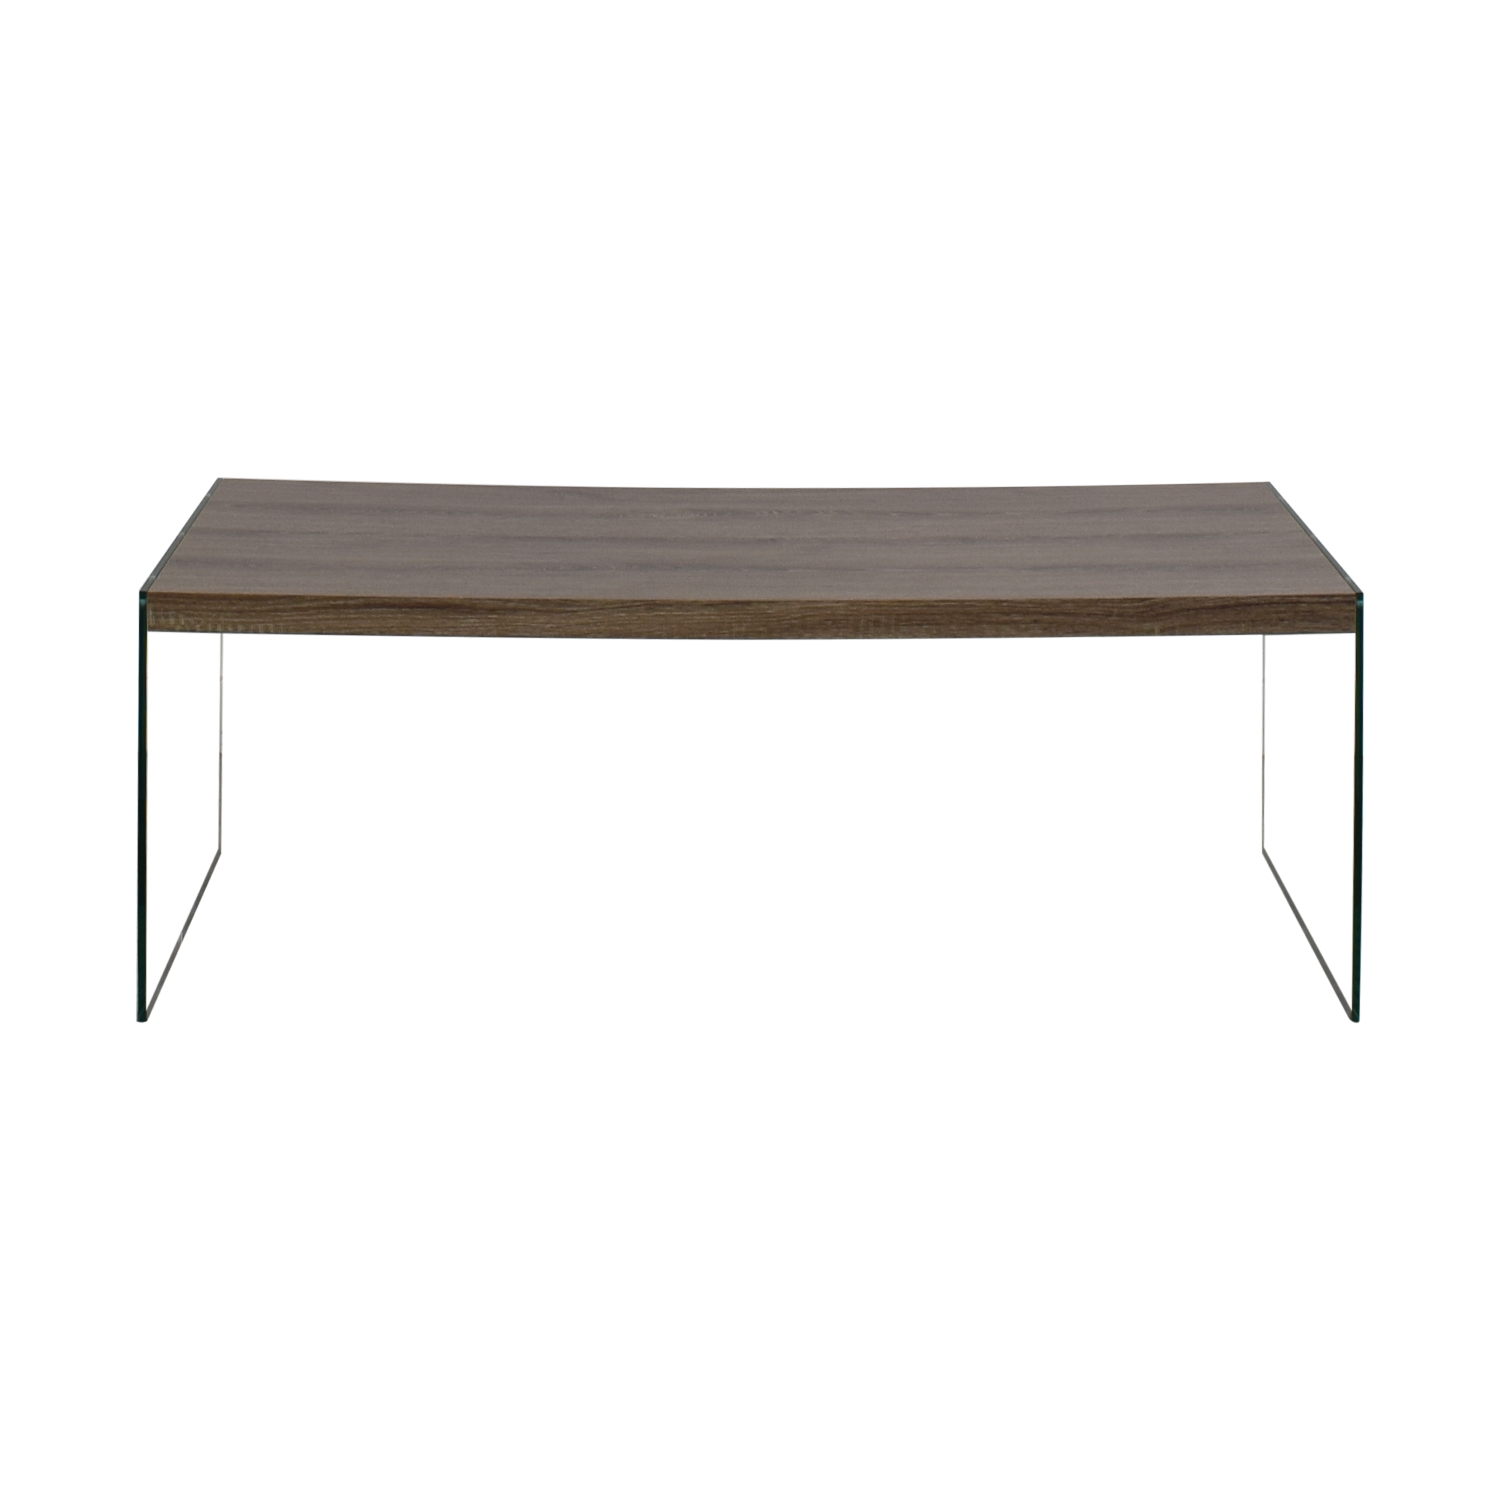 80 Off Monarch Furniture Monarch Specialties Grey Rustic Wood And Glass Coffee Table Tables